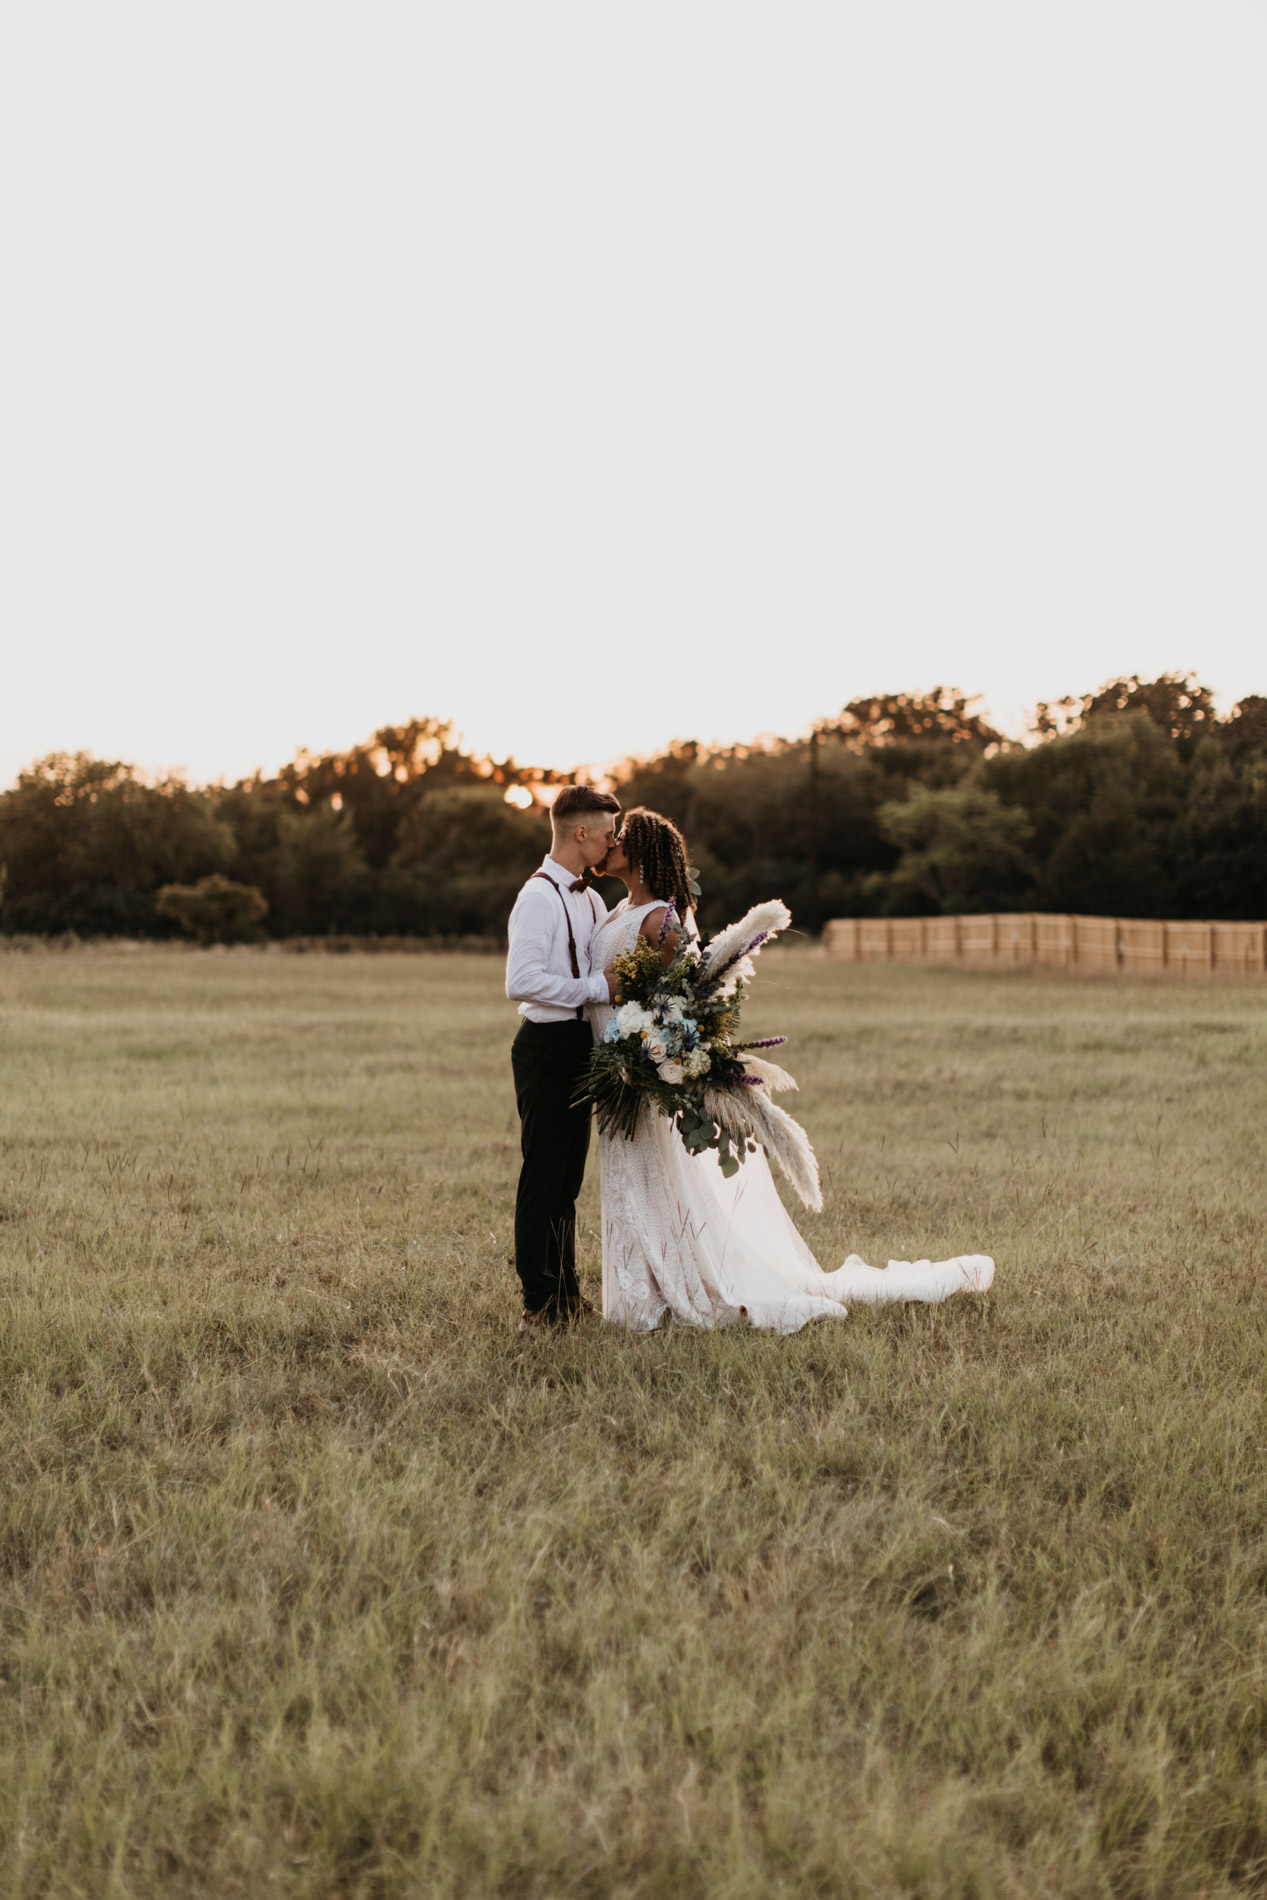 Bride and groom kissing on East Texas wedding day